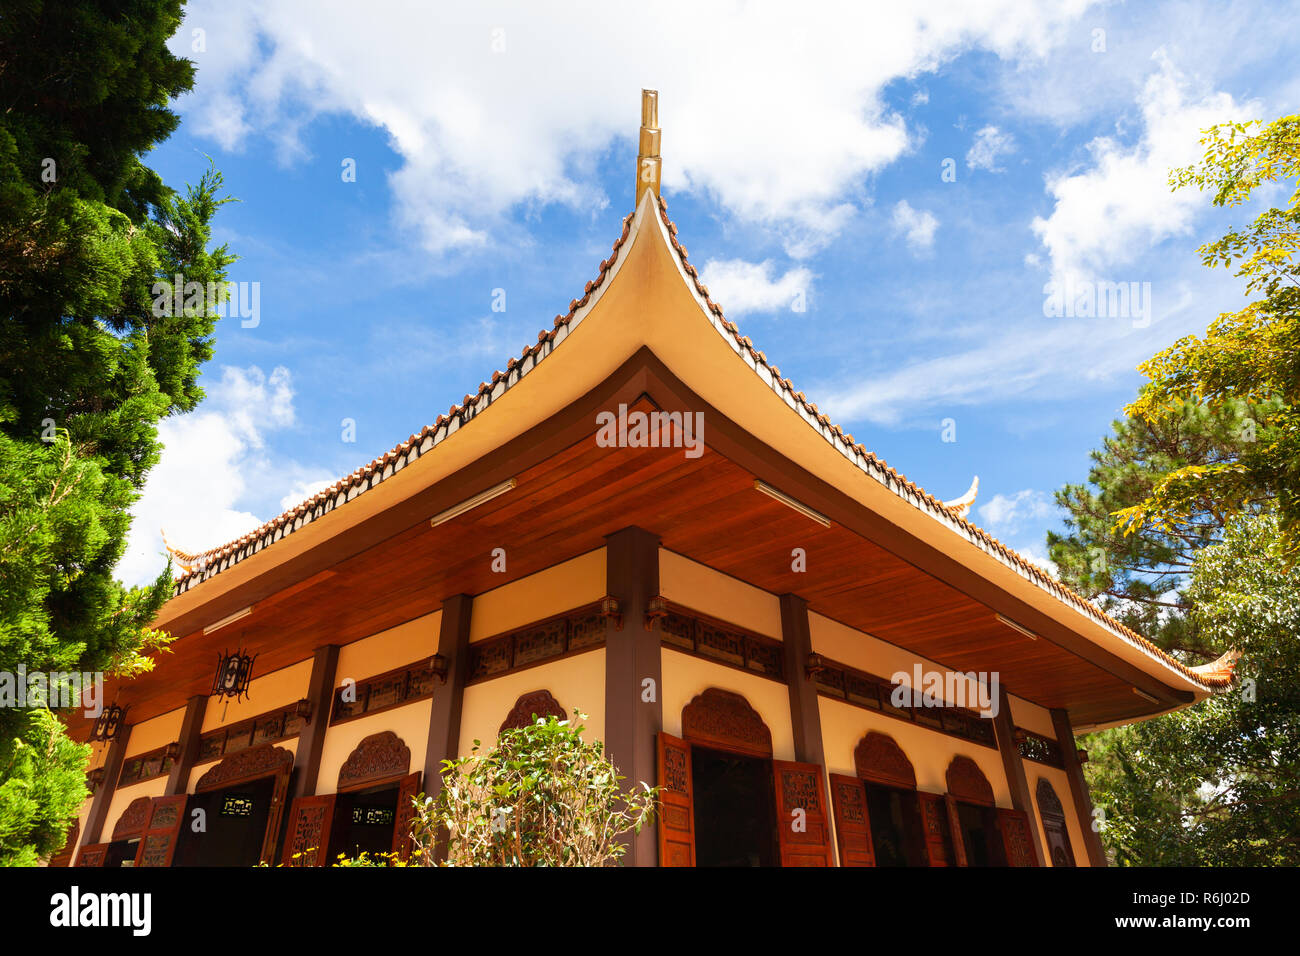 One of the buildings on the grounds of the Truc Lam monastery located on a hill near Dalat, Vietnam - Stock Image